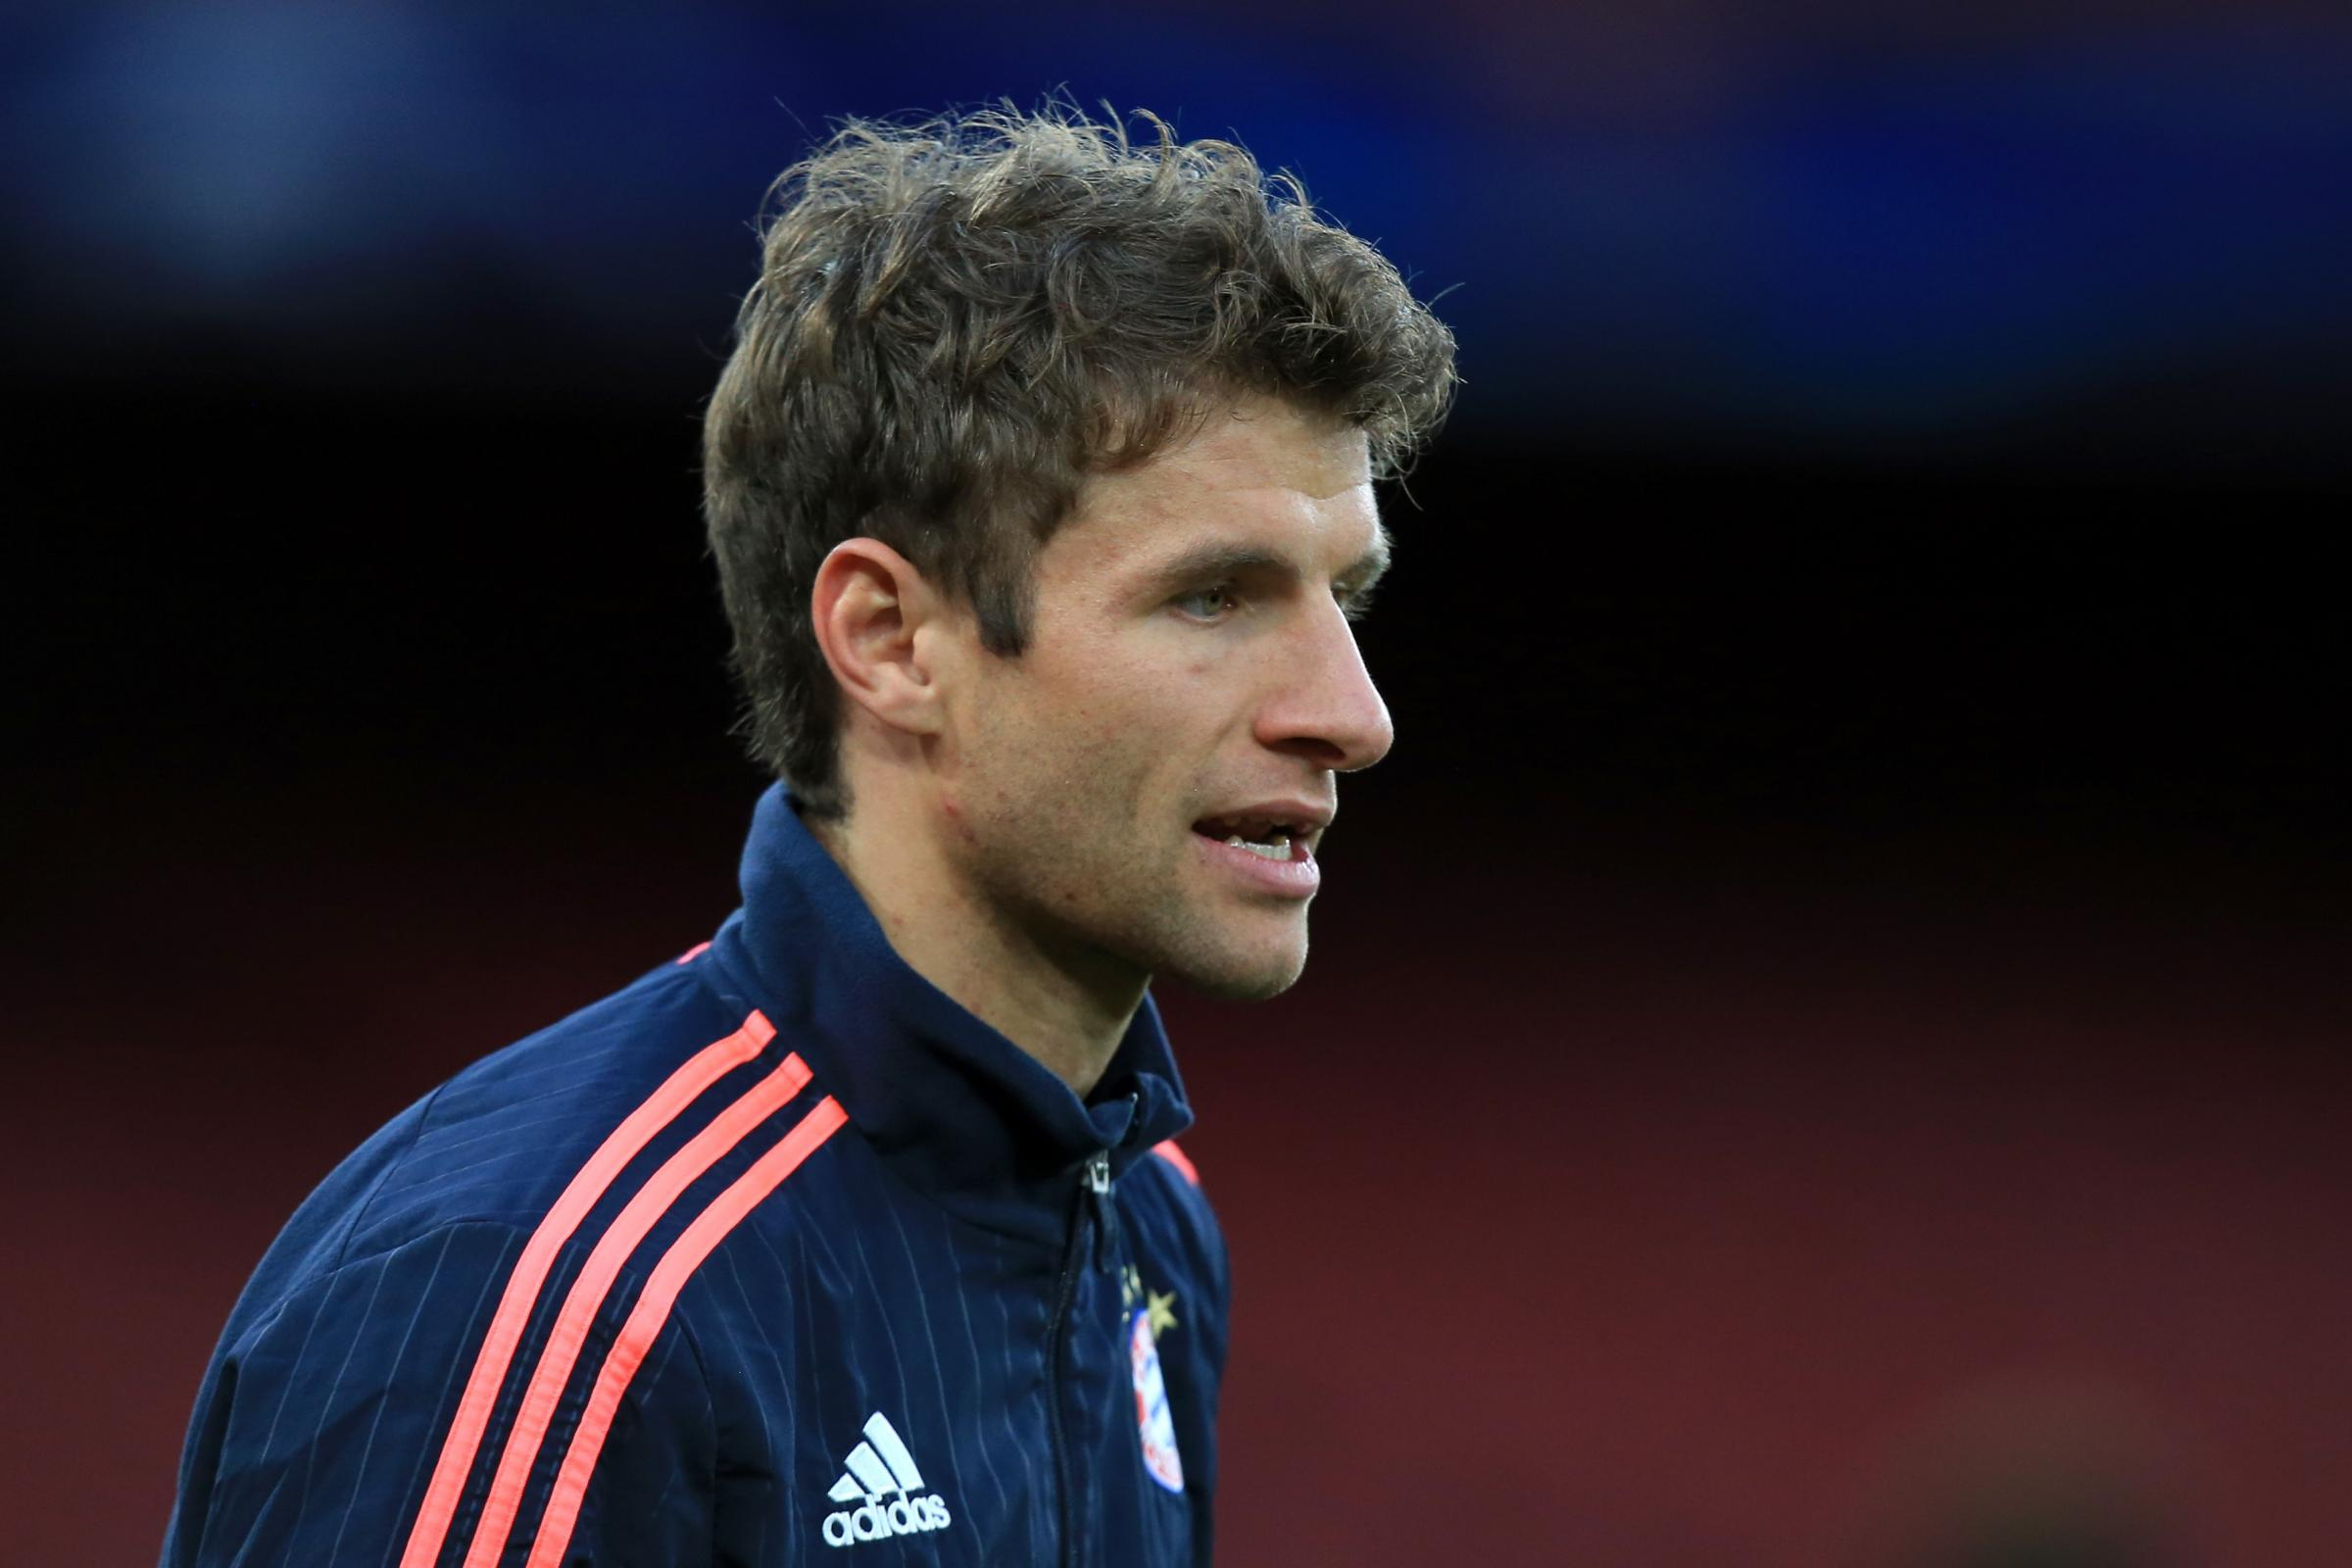 Thomas Muller has been hit with a two-match ban